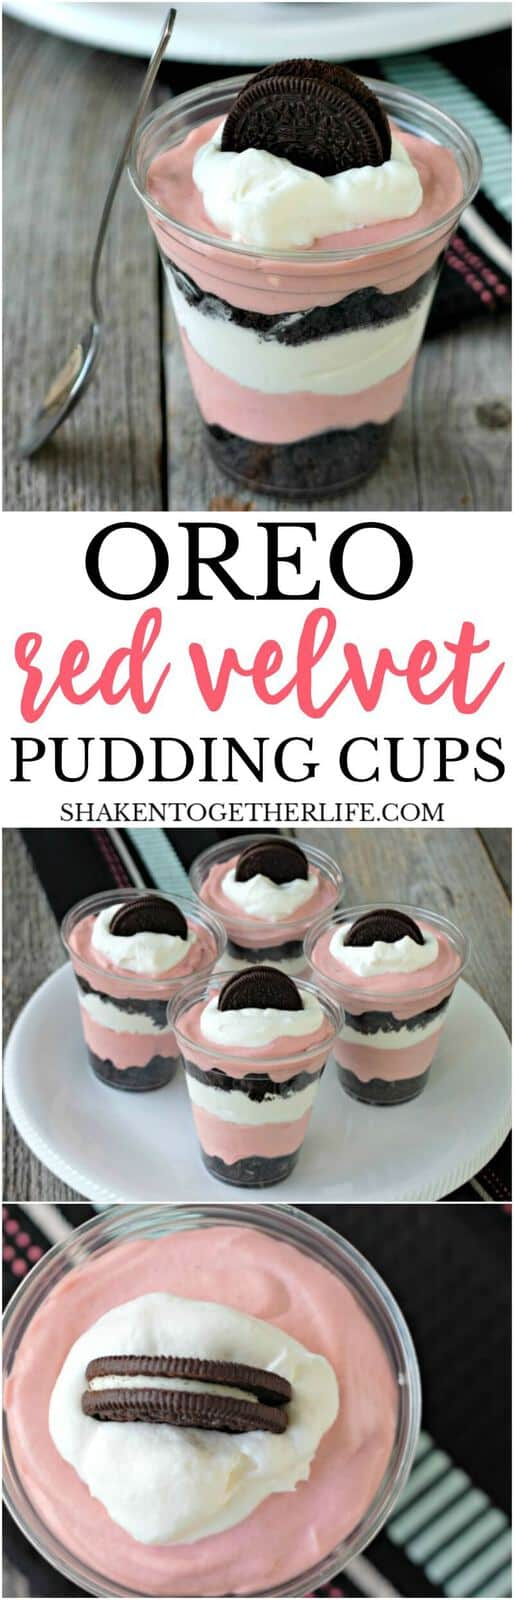 Glorious layers of red velvet pudding mousse, crushed Oreos are whipped cream make up this easy, no bake dessert! You are going to LOVE these Red Velvet Pudding Cups!